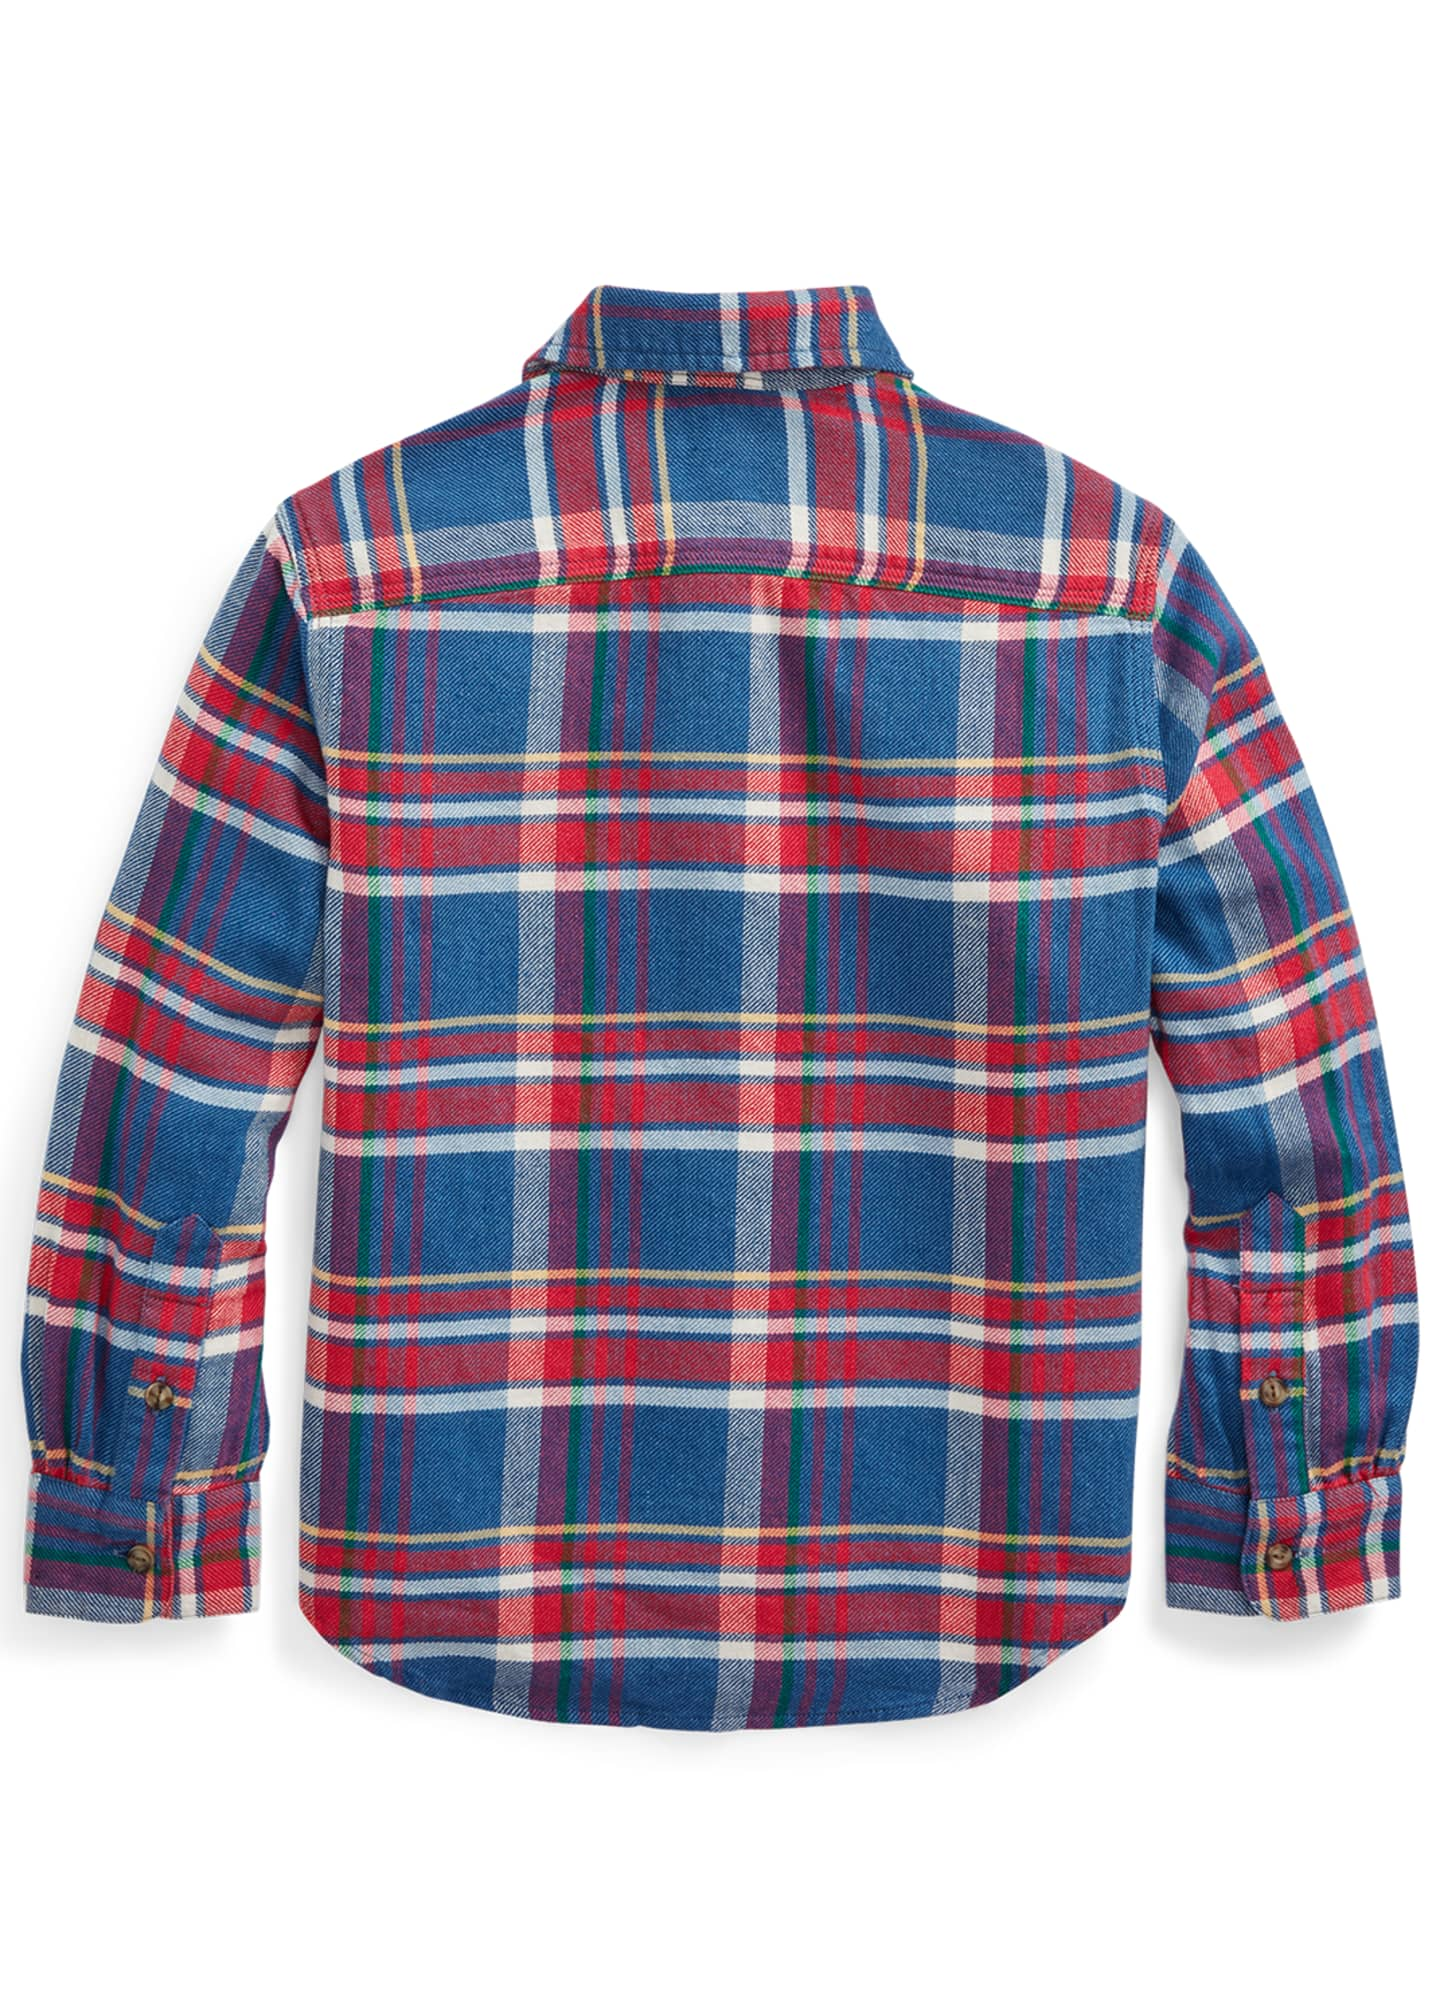 Image 2 of 2: Boy's Plaid Button-Down Shirt, Size 5-7